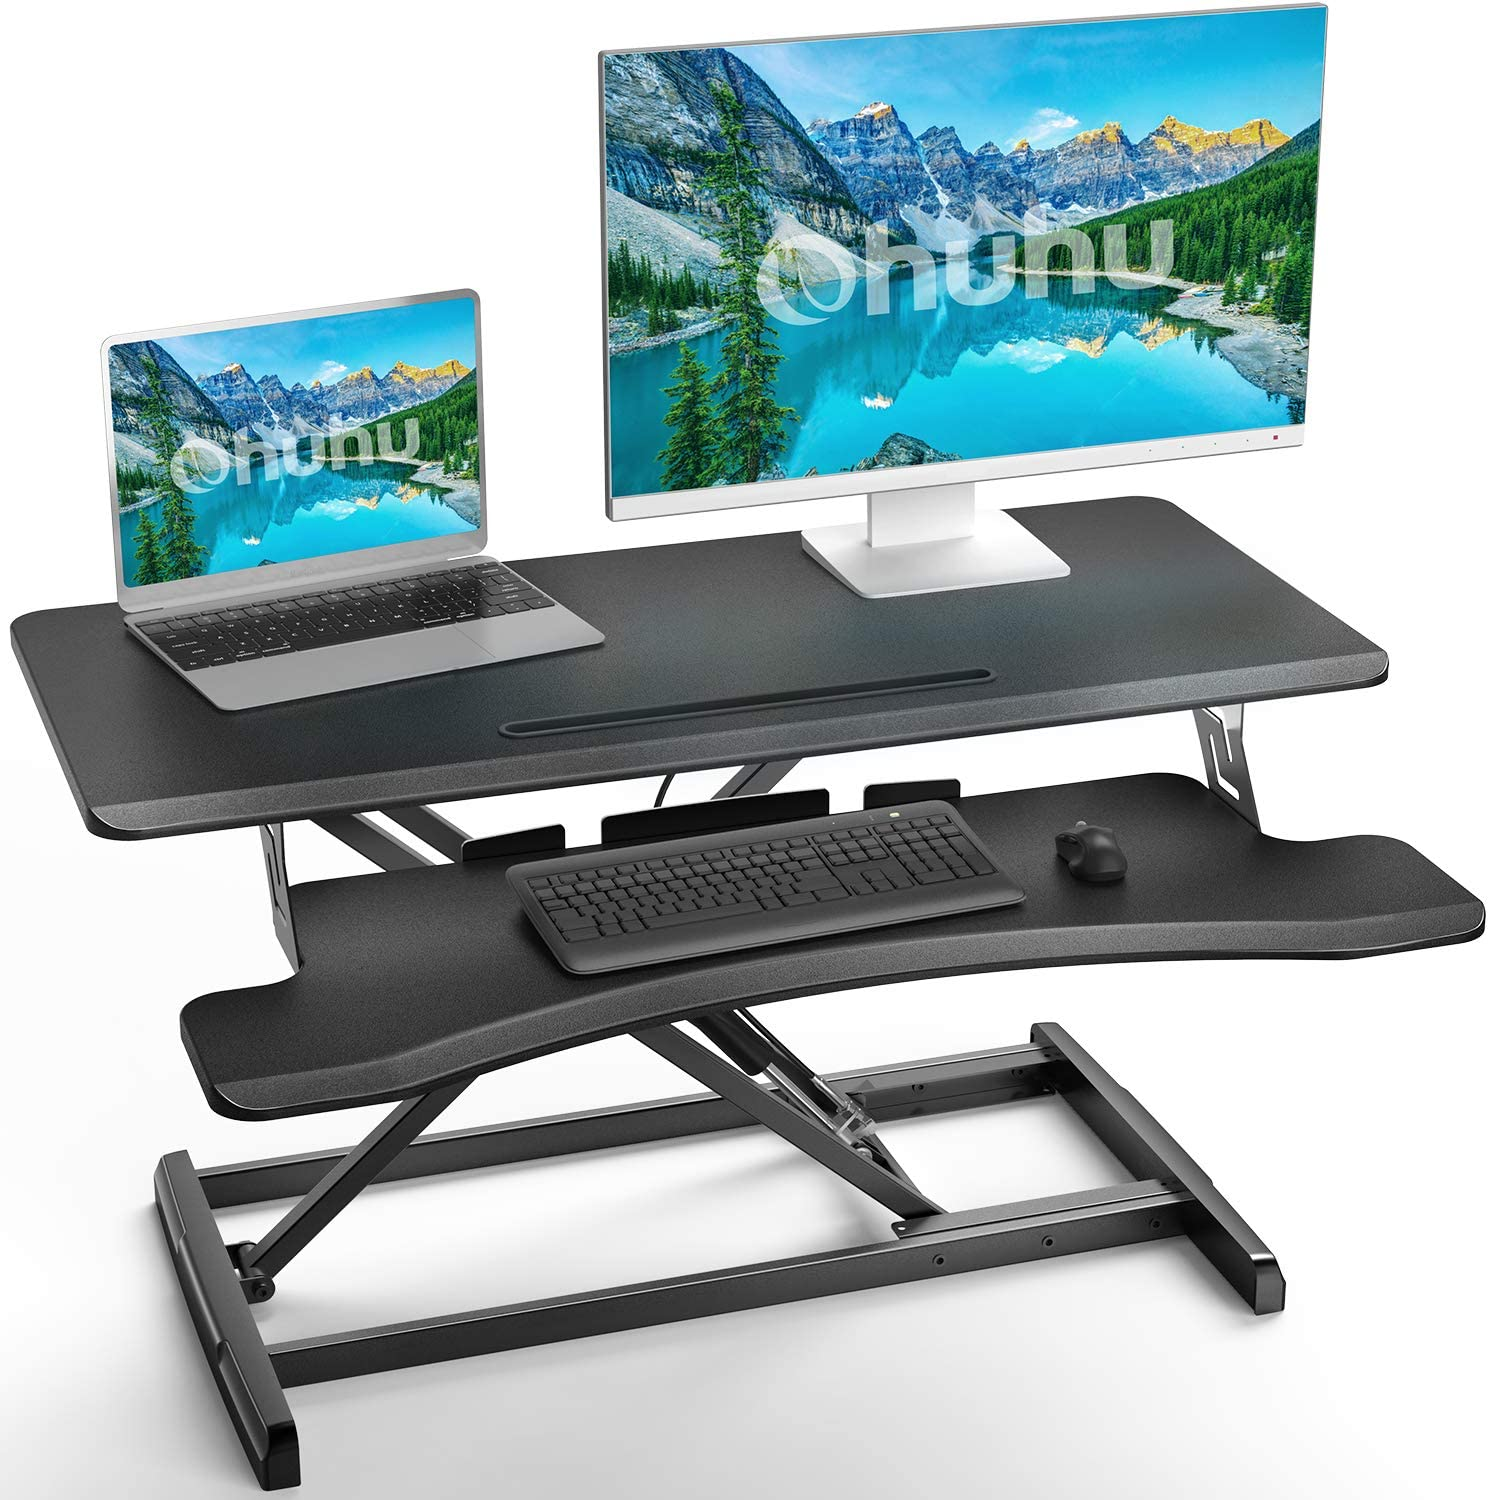 Height Adjustable 34.6 inch Standing Desk Converter, Ohuhu Sit to Stand Up Desk Riser - Home Office Desk Workstation for Dual Monitors and Laptop with Removal Keyboard Tray, Gas Spring Lift - Black